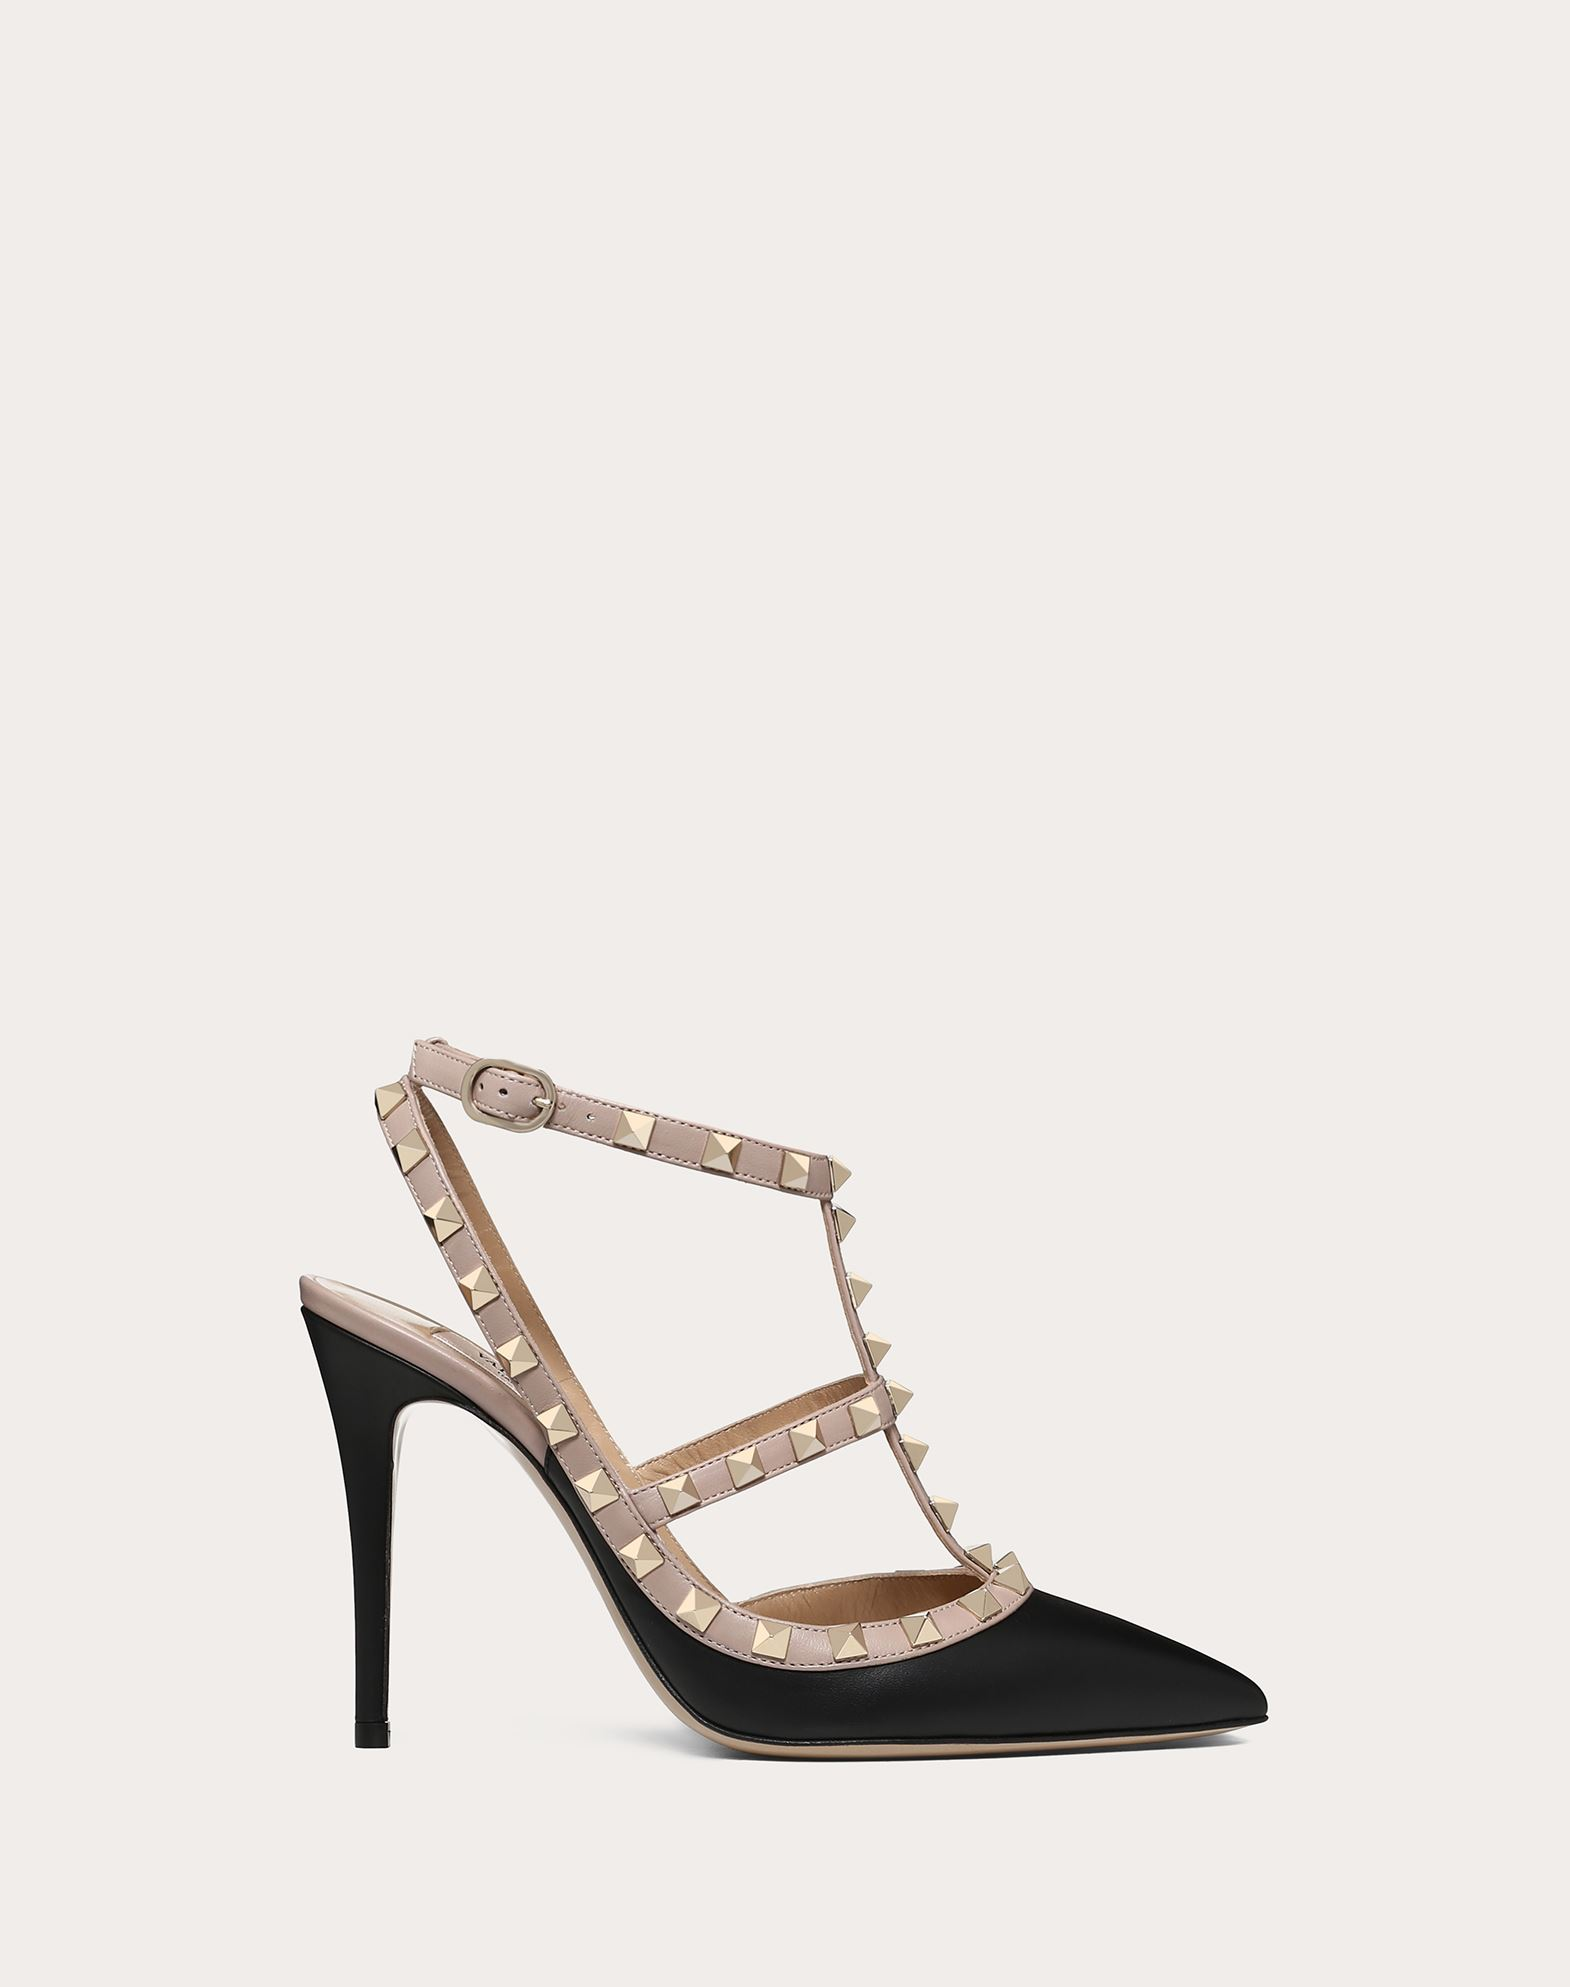 VALENTINO Two-tone Studs Buckling ankle strap closure Narrow toeline Leather  sole Spike heel 44841528dv